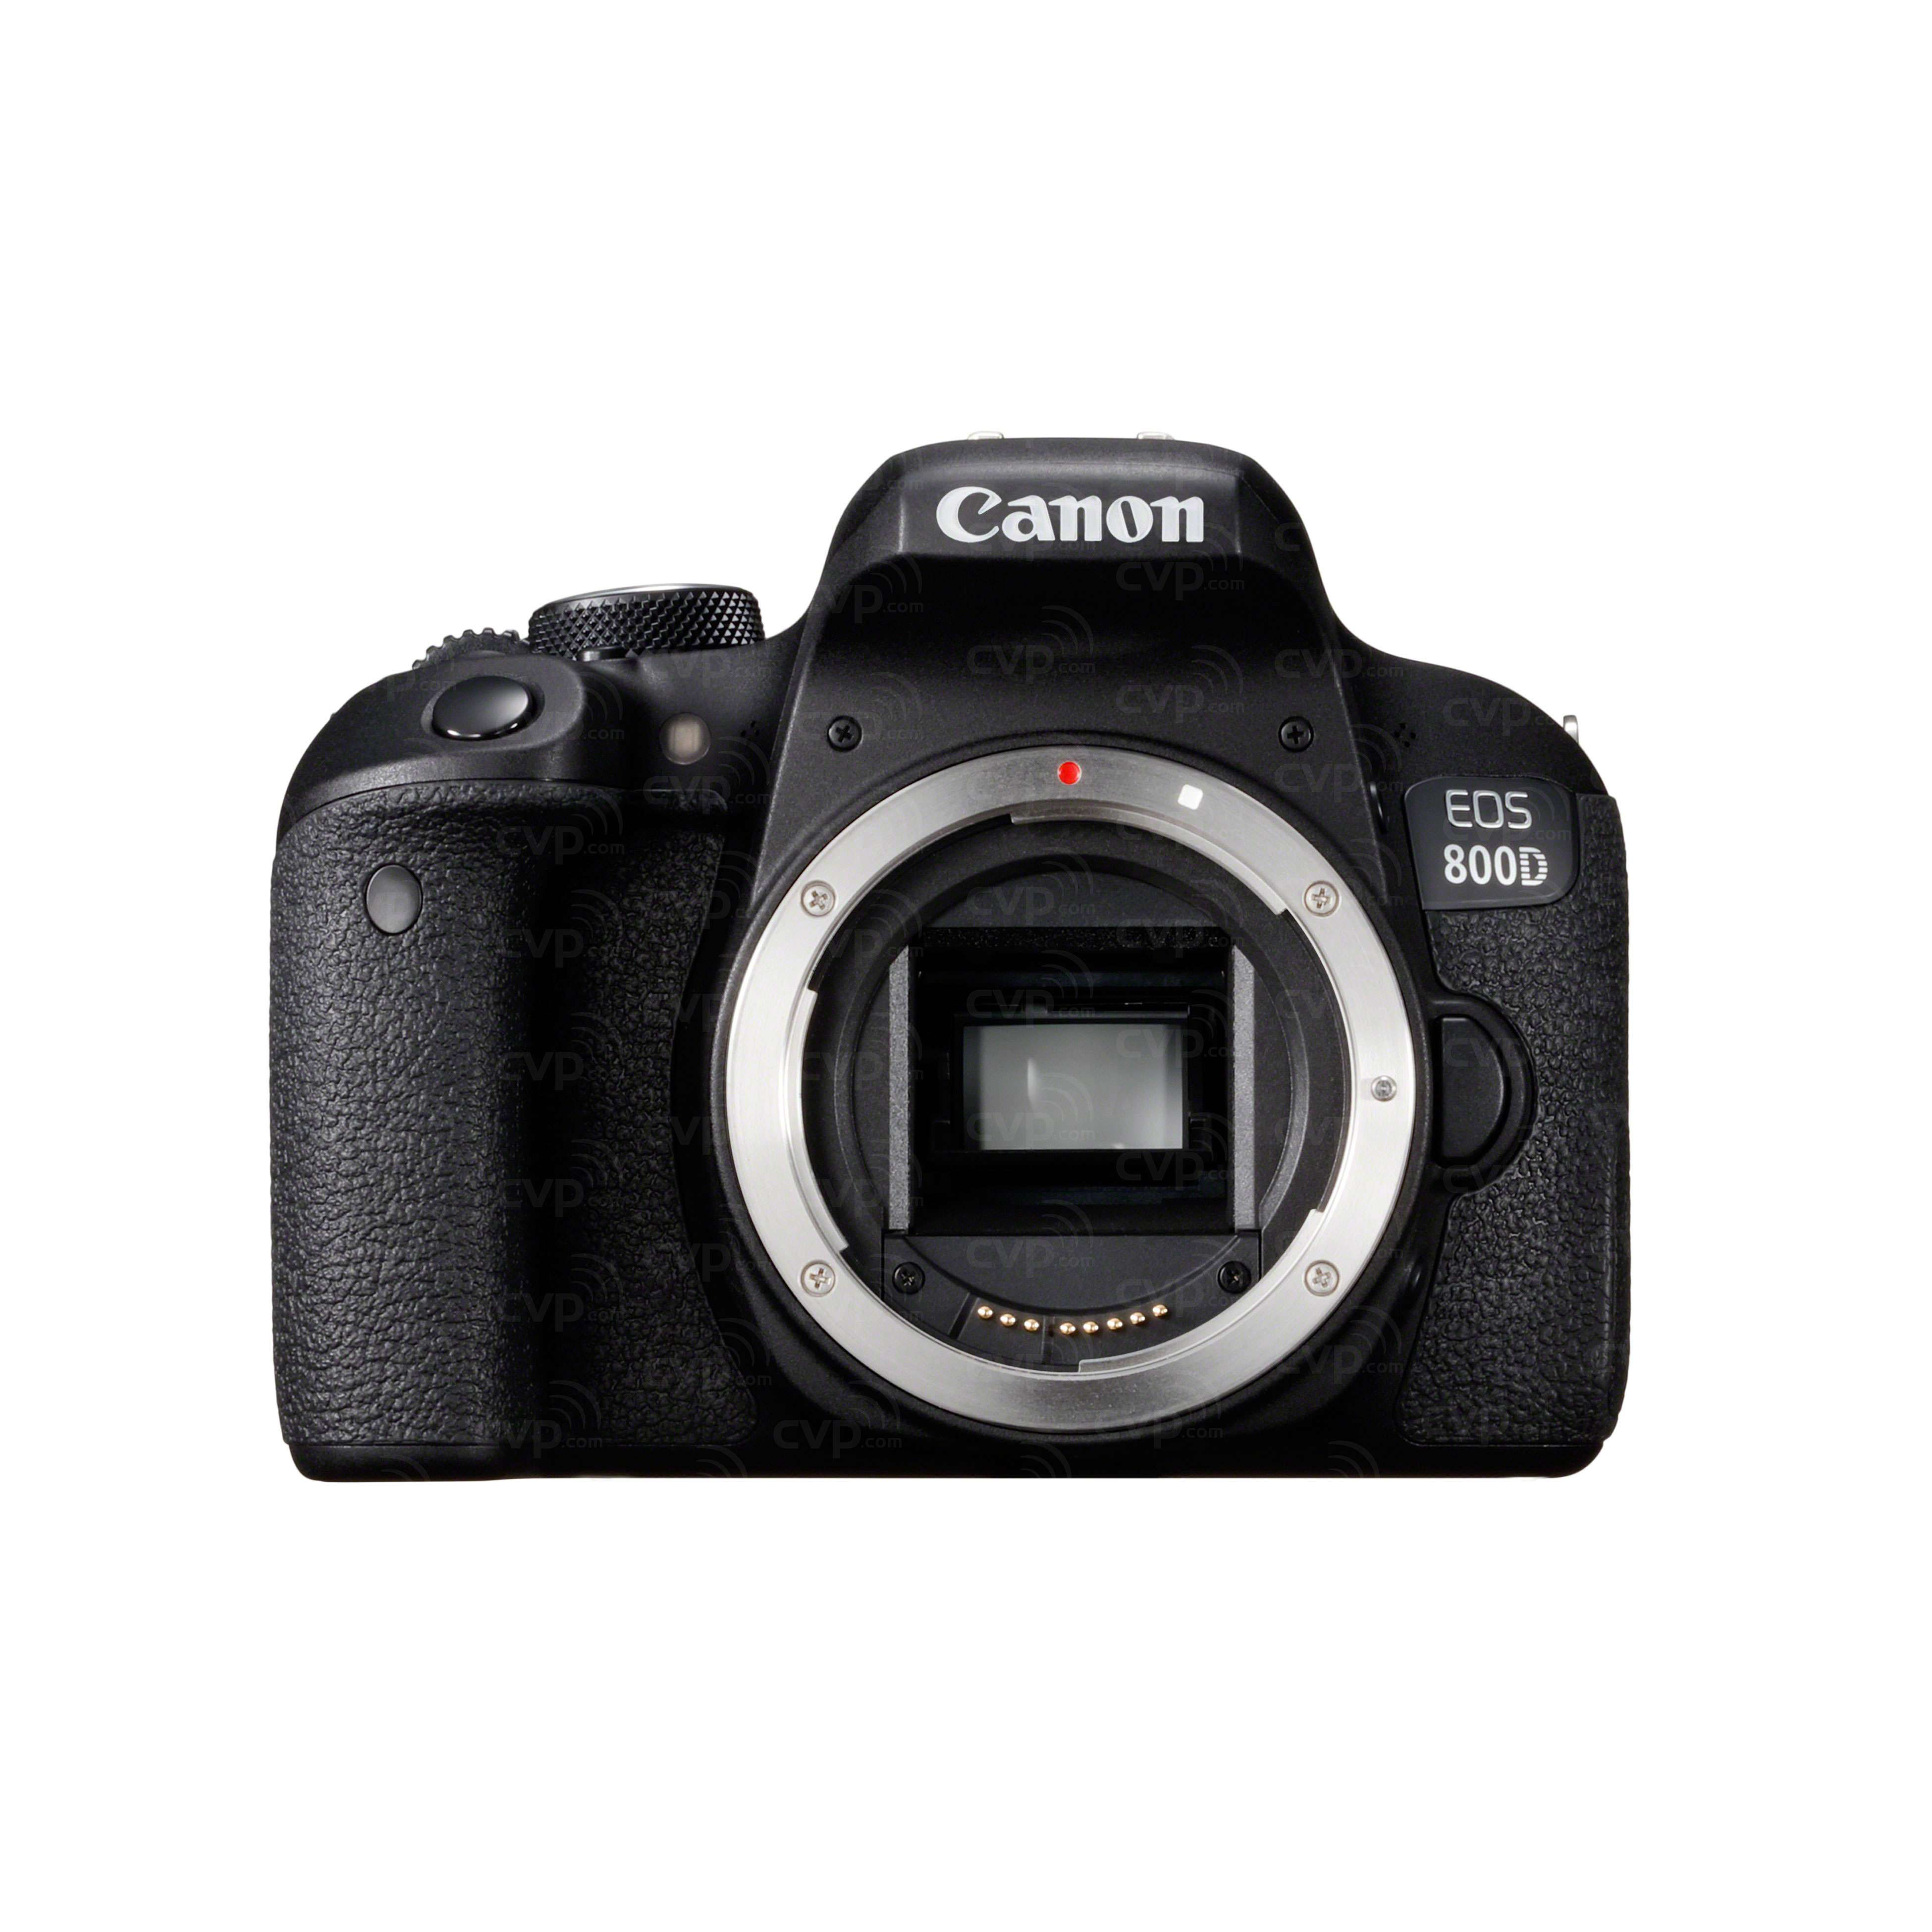 Canon EOS 800D 24.2MP Full HD Digital SLR Camera Body Only (Canon p/n 1895C016AA)